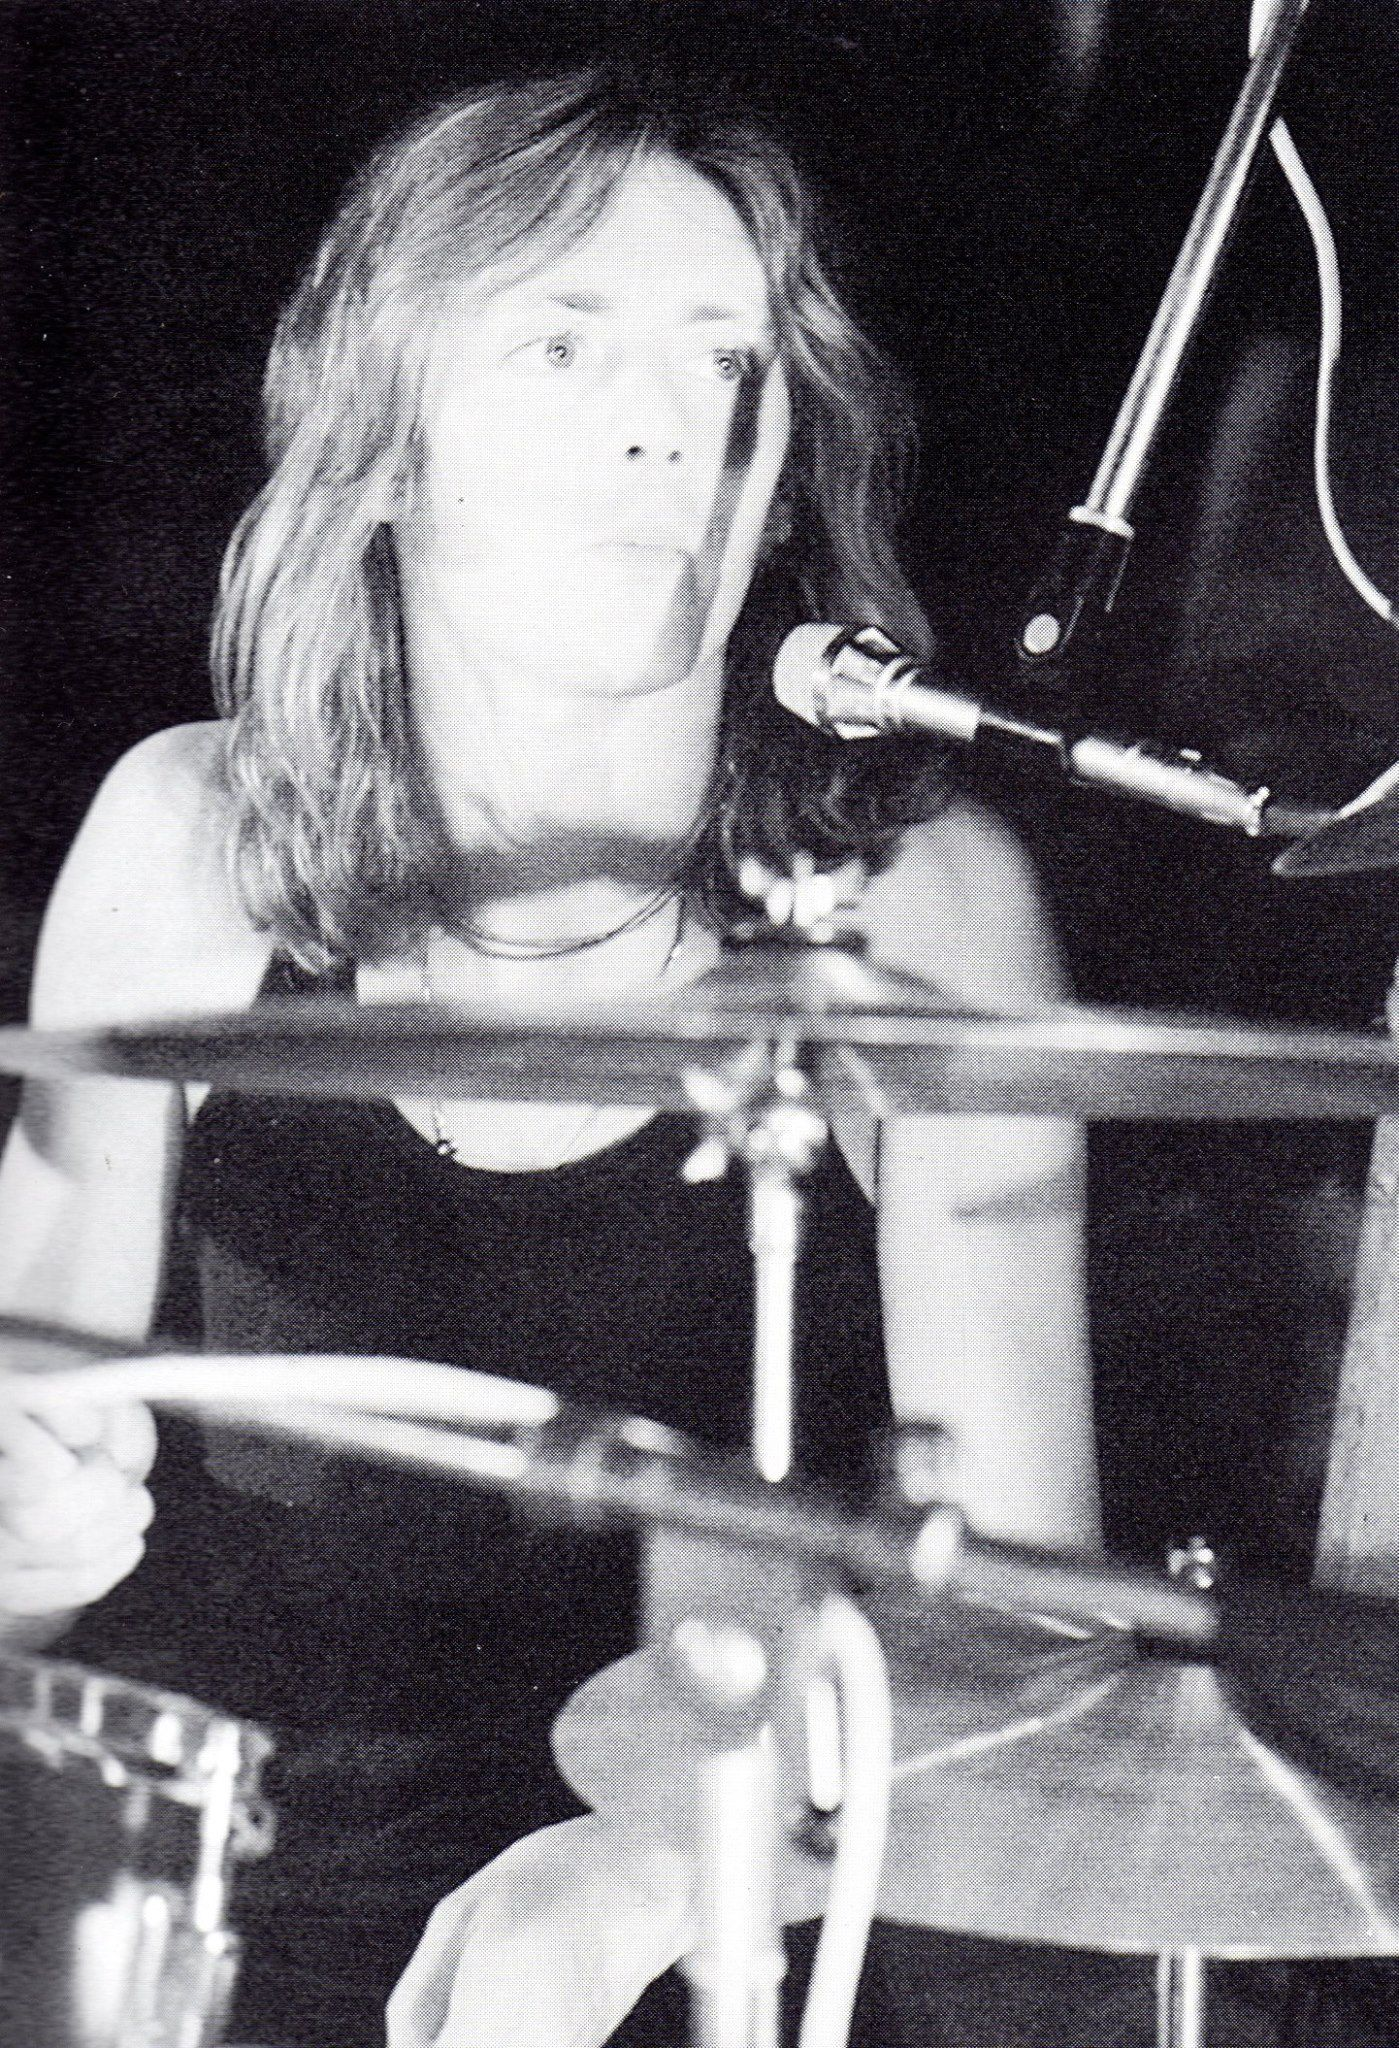 Roger Taylor In 1973 Photo By Les Wilson Via Queen